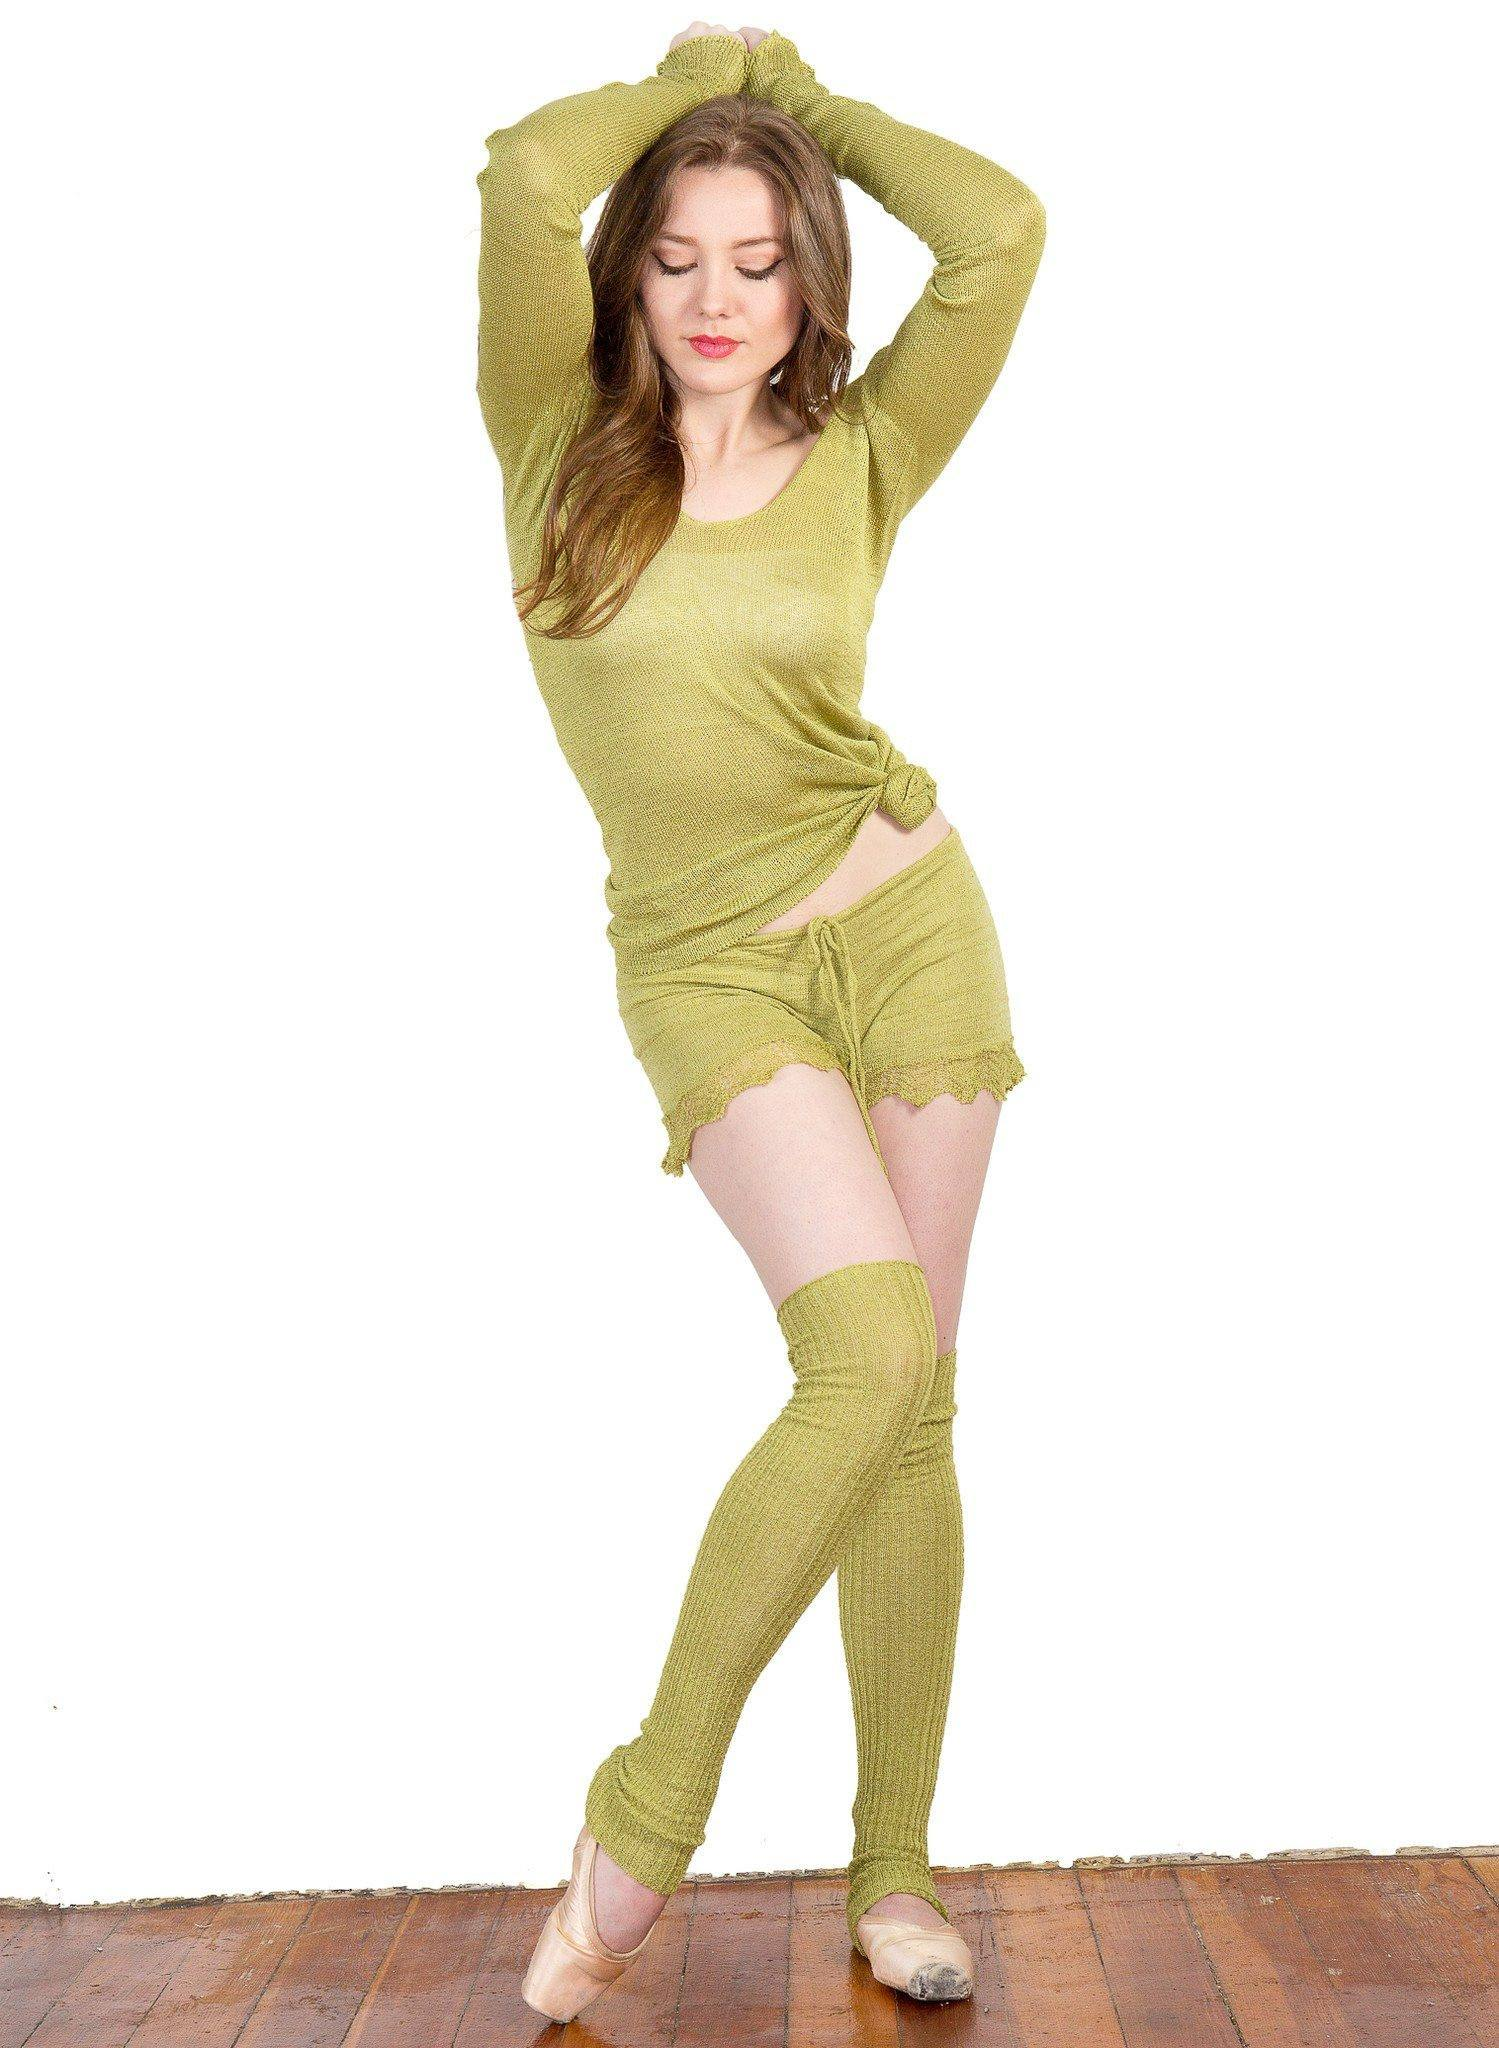 Leg Warmers: Knee High KrinkleSpun Soft Subtle Shine Legwarmers by KD dance New York Made In USA @KDdanceNewYork #MadeInUSA - 7